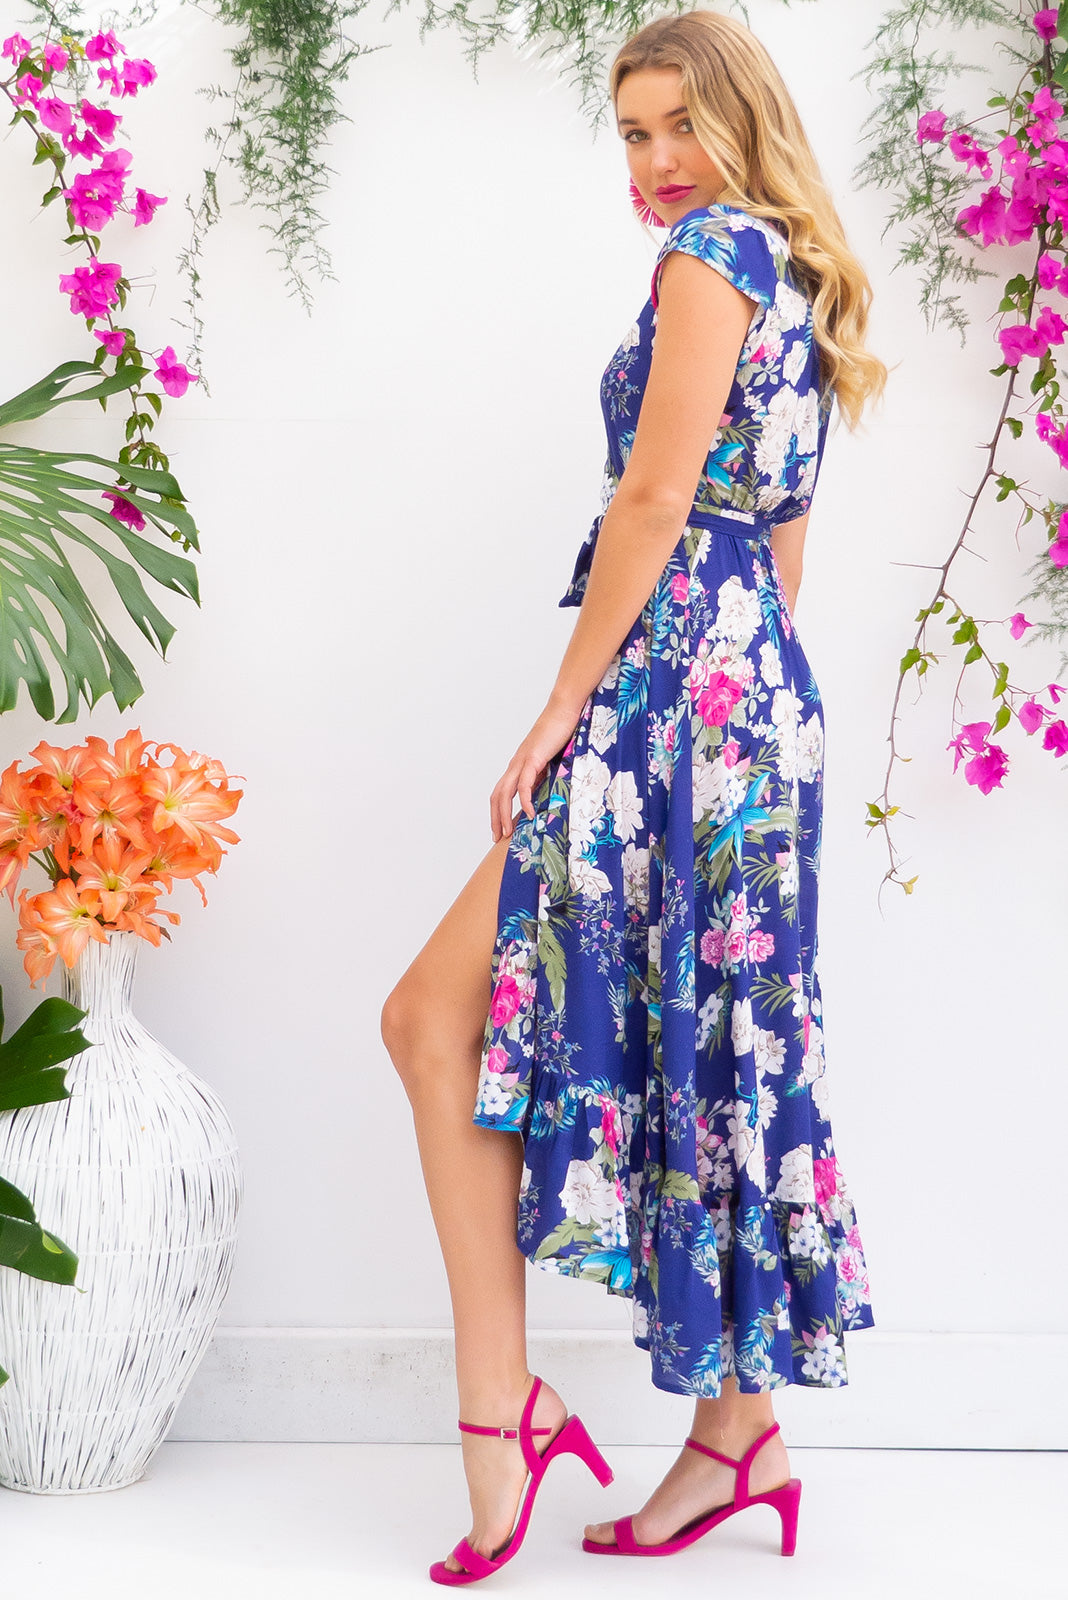 Symphony Del Mar Blue Maxi Wrap Dress with a fitted bodice, cap sleeve and frill around the hem in a bright lapis blue floral print on soft rayon